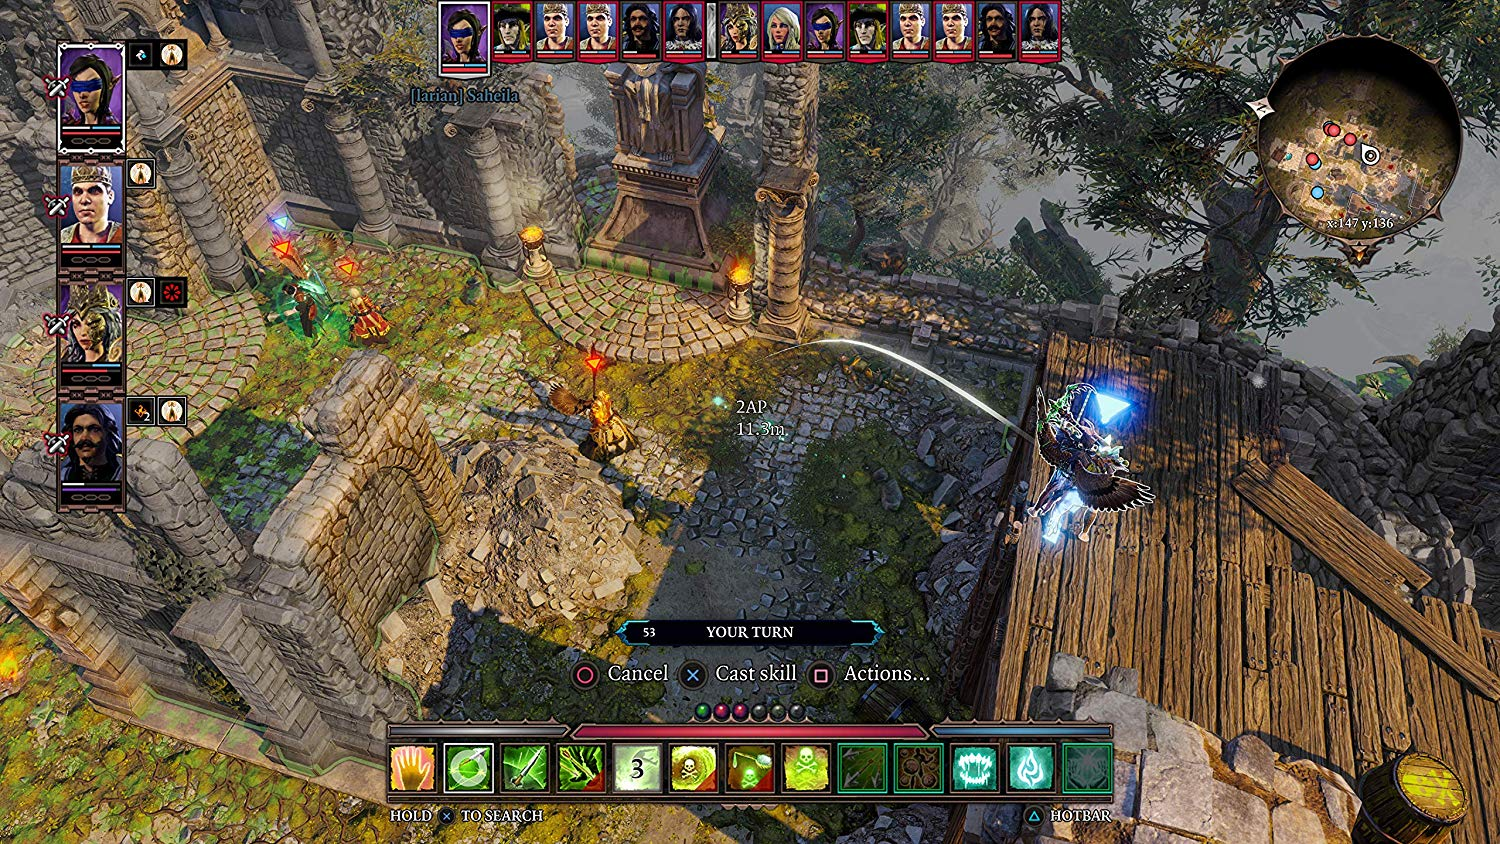 Divinity original sin 2 review